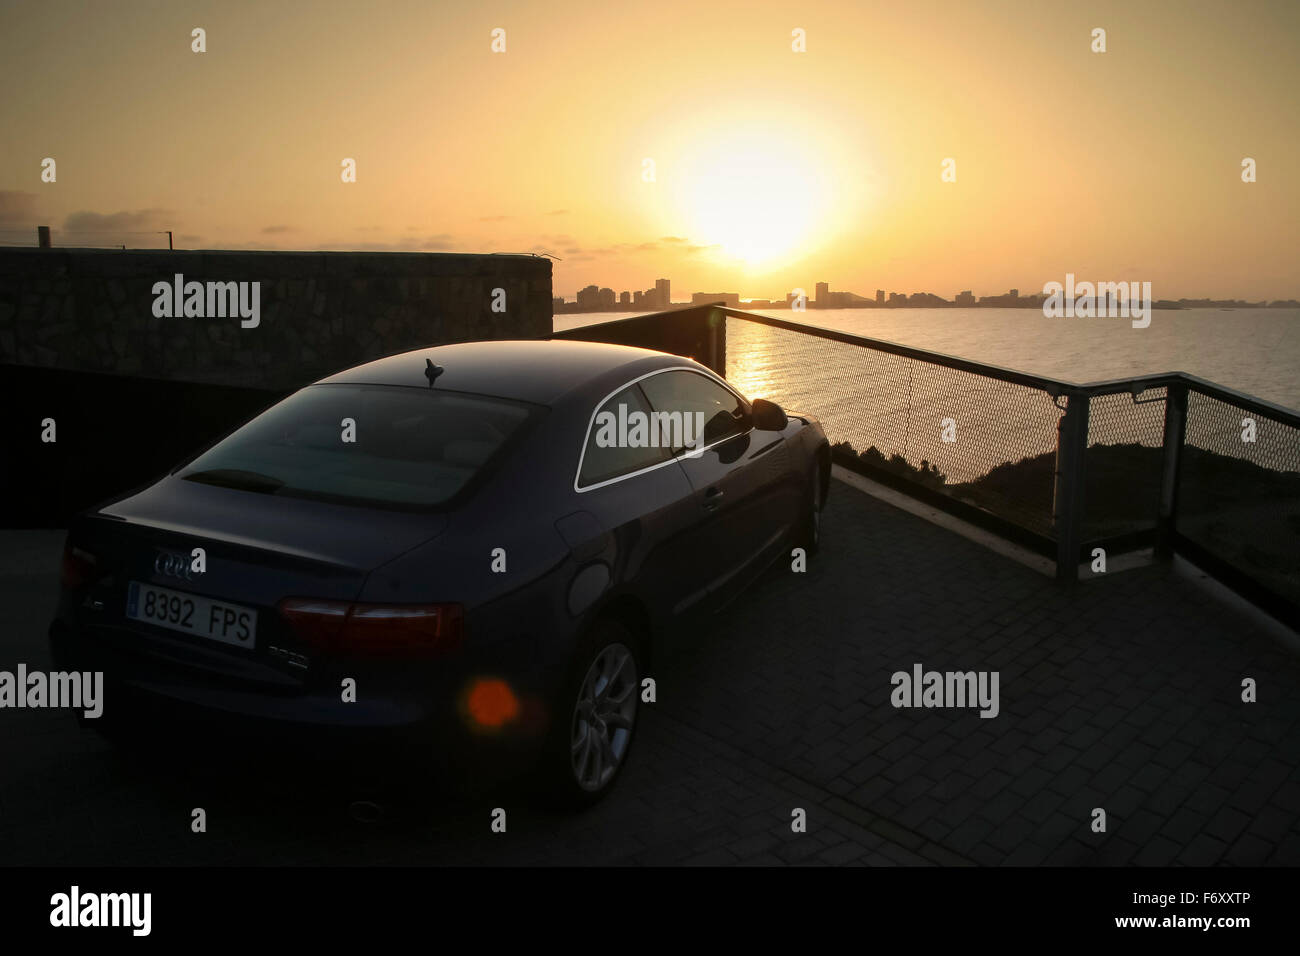 Audi A TDI Quattro Watching The Sunset Over La Manga From The - Sunset audi